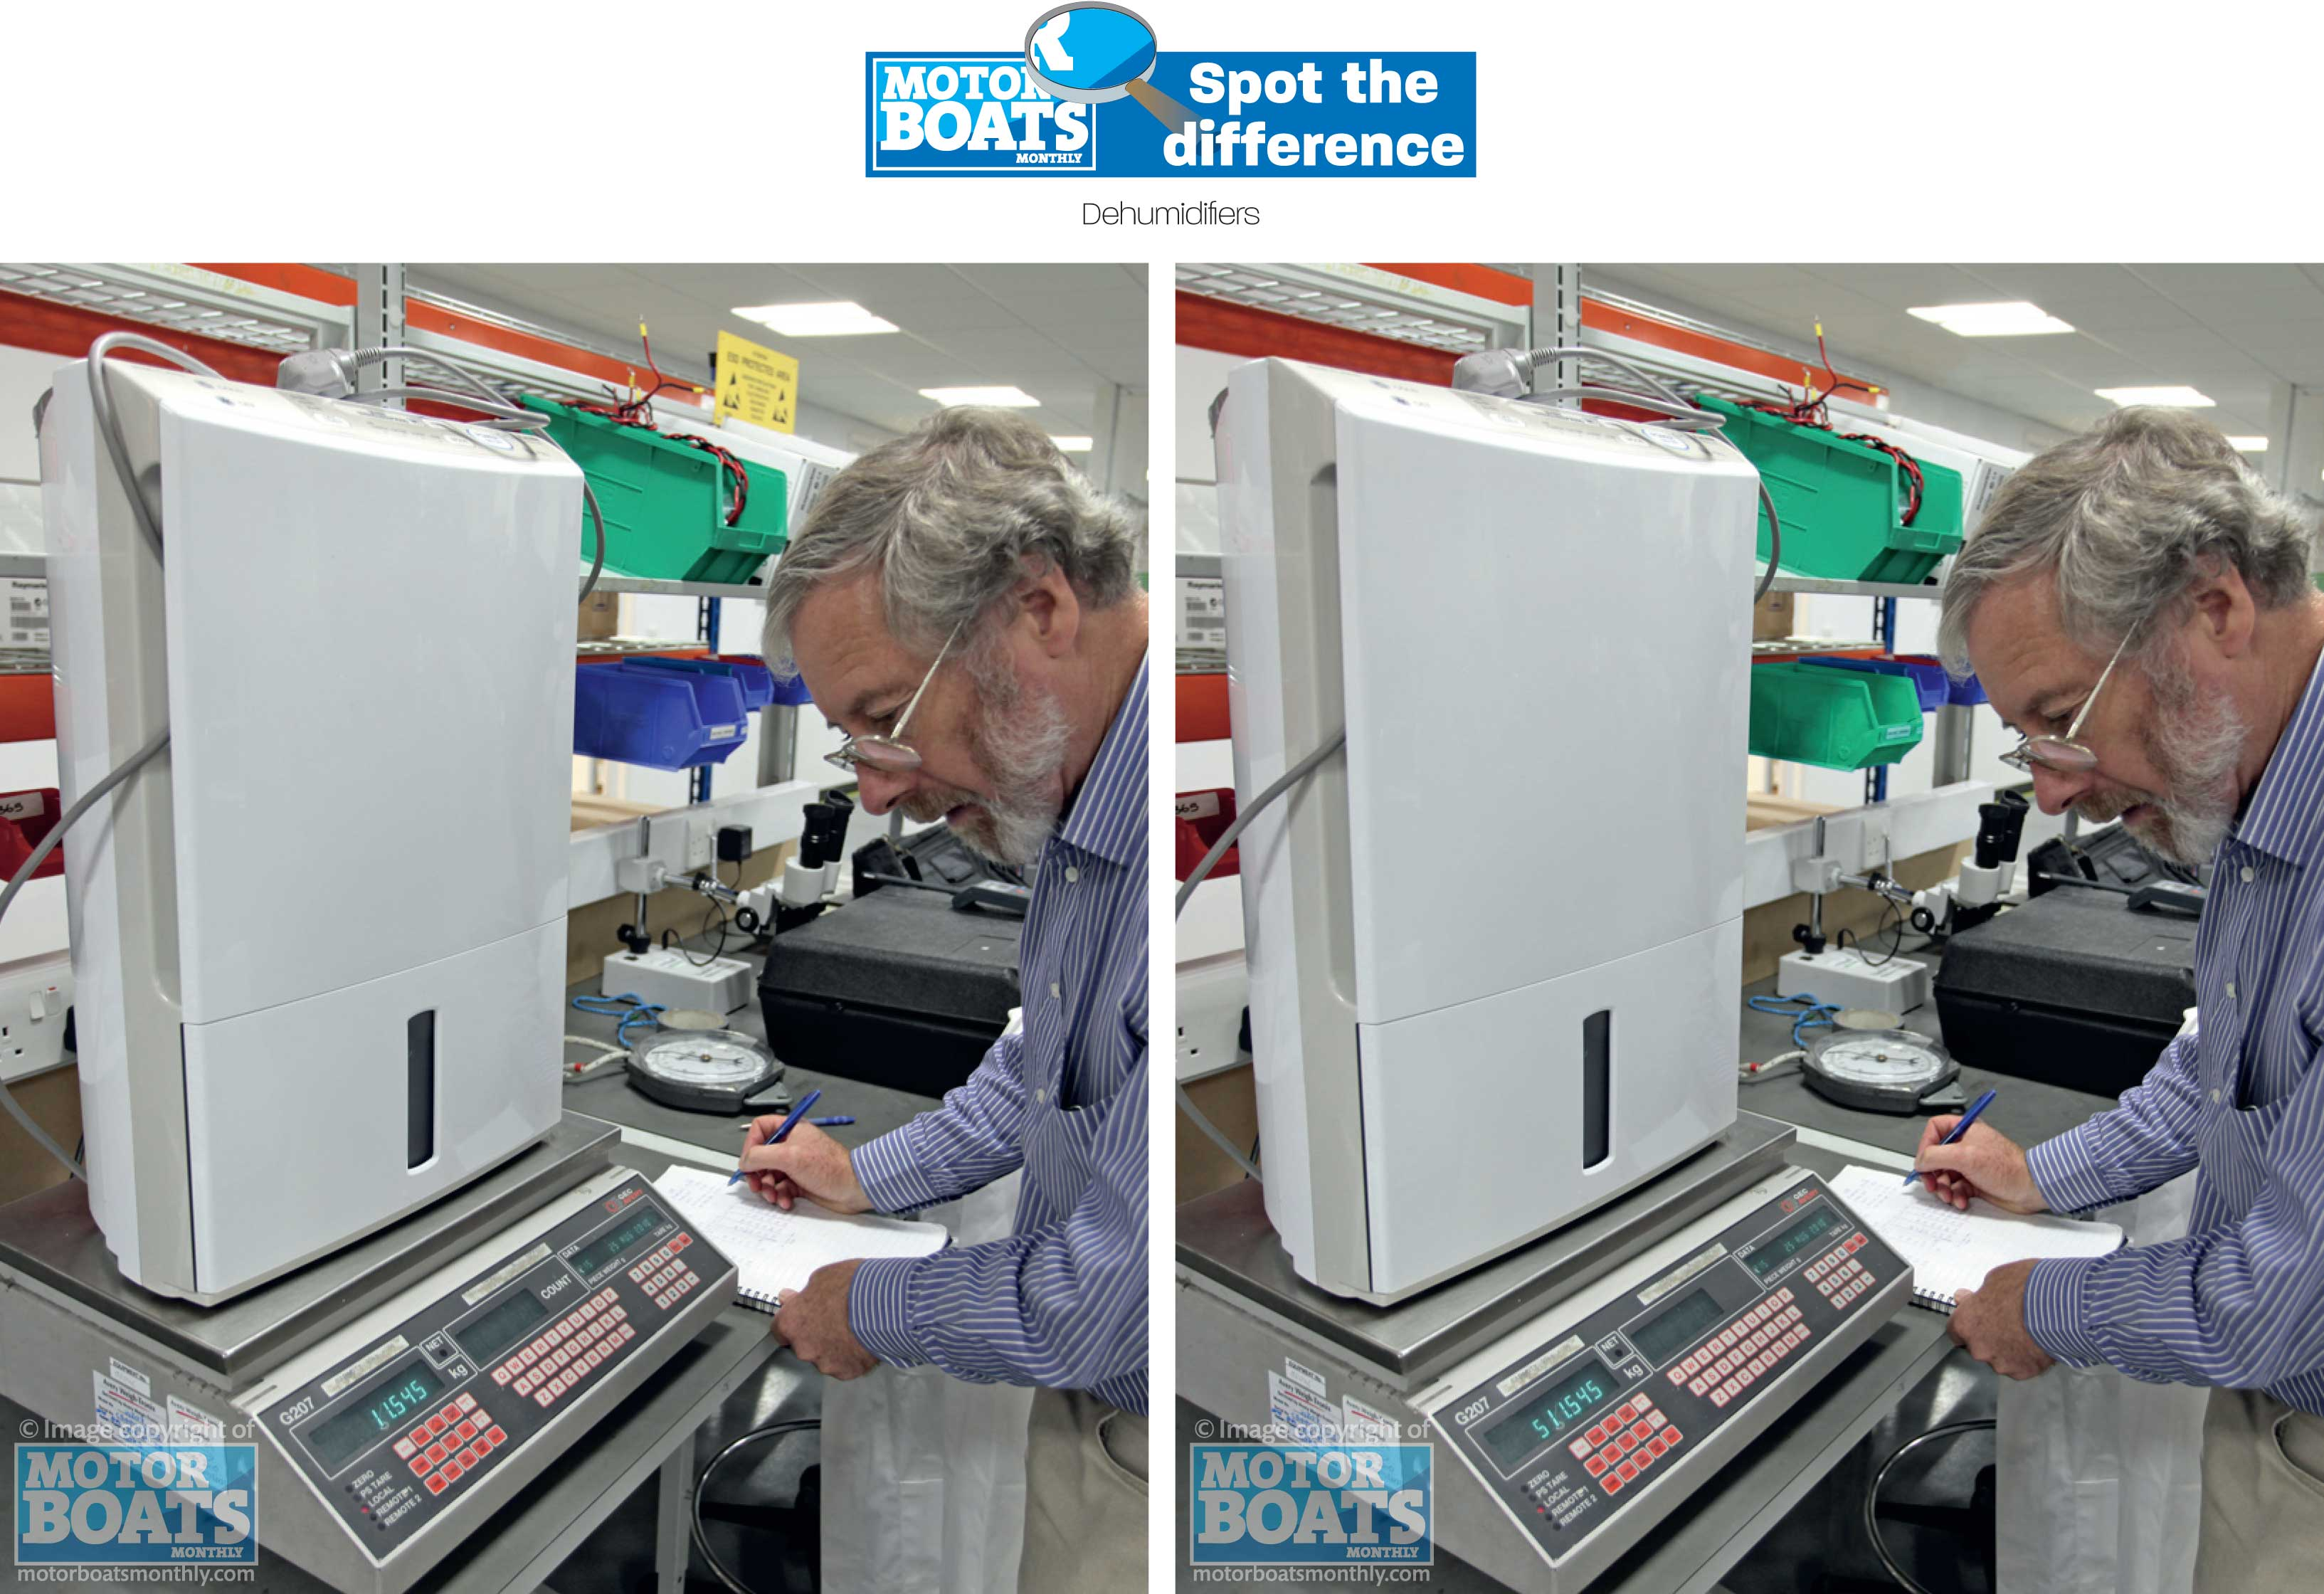 Dehumidifiers - Spot the difference